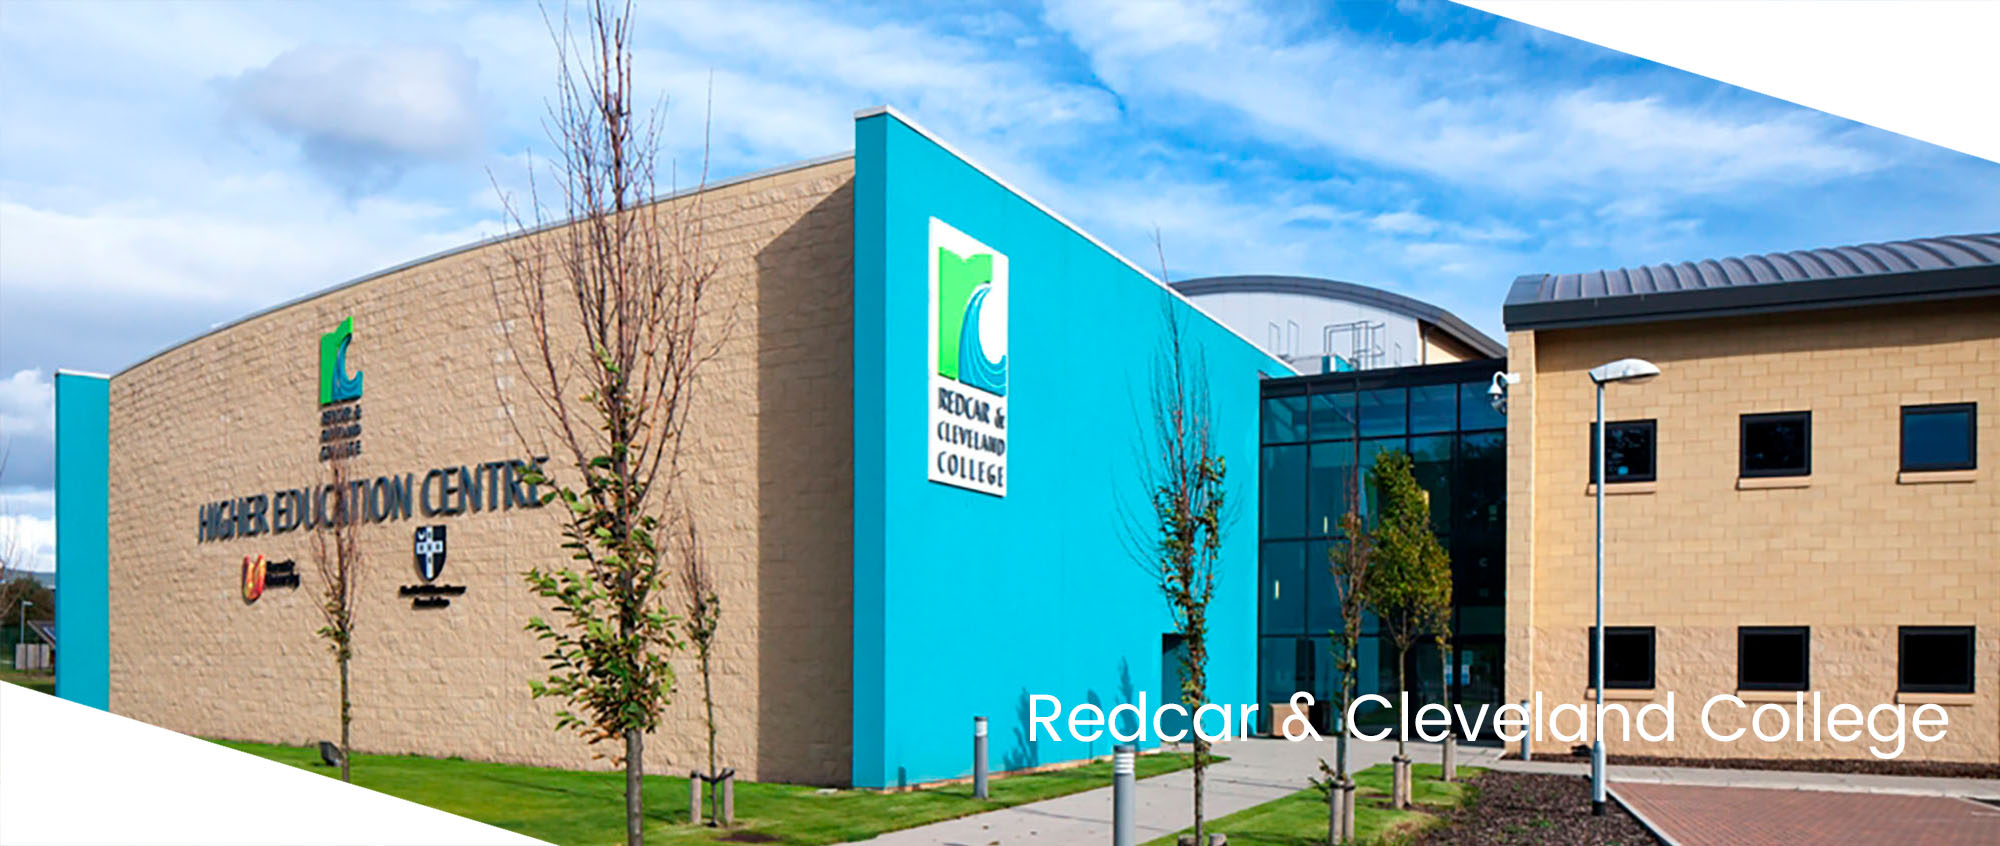 Niven Architects - Redcar and Cleveland College.jpg